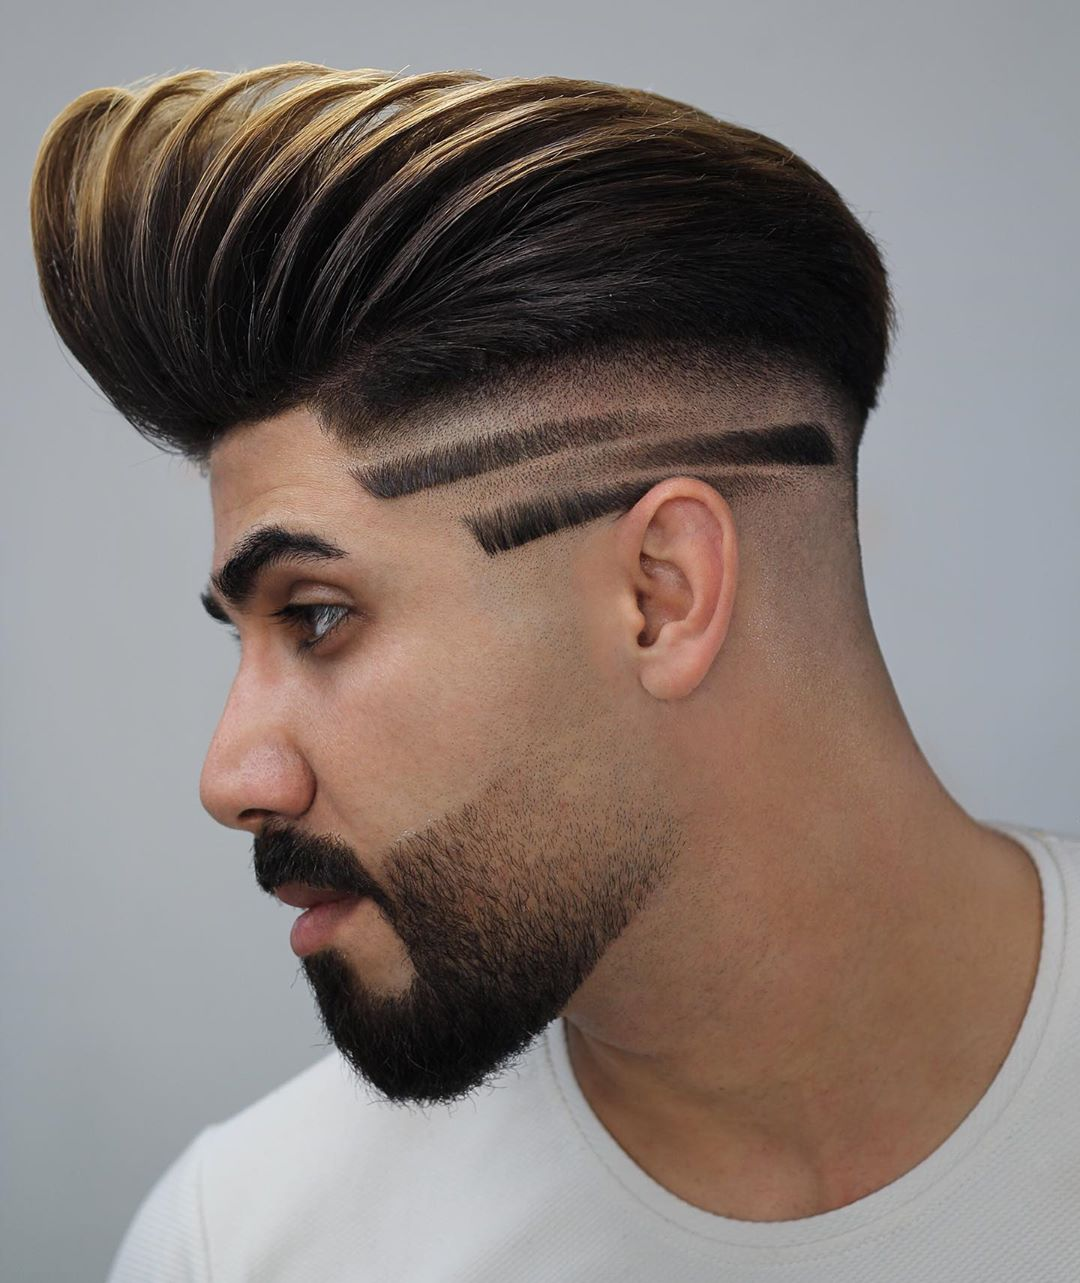 12 Most Creative Haircut Designs with Lines  Stylish Haircut